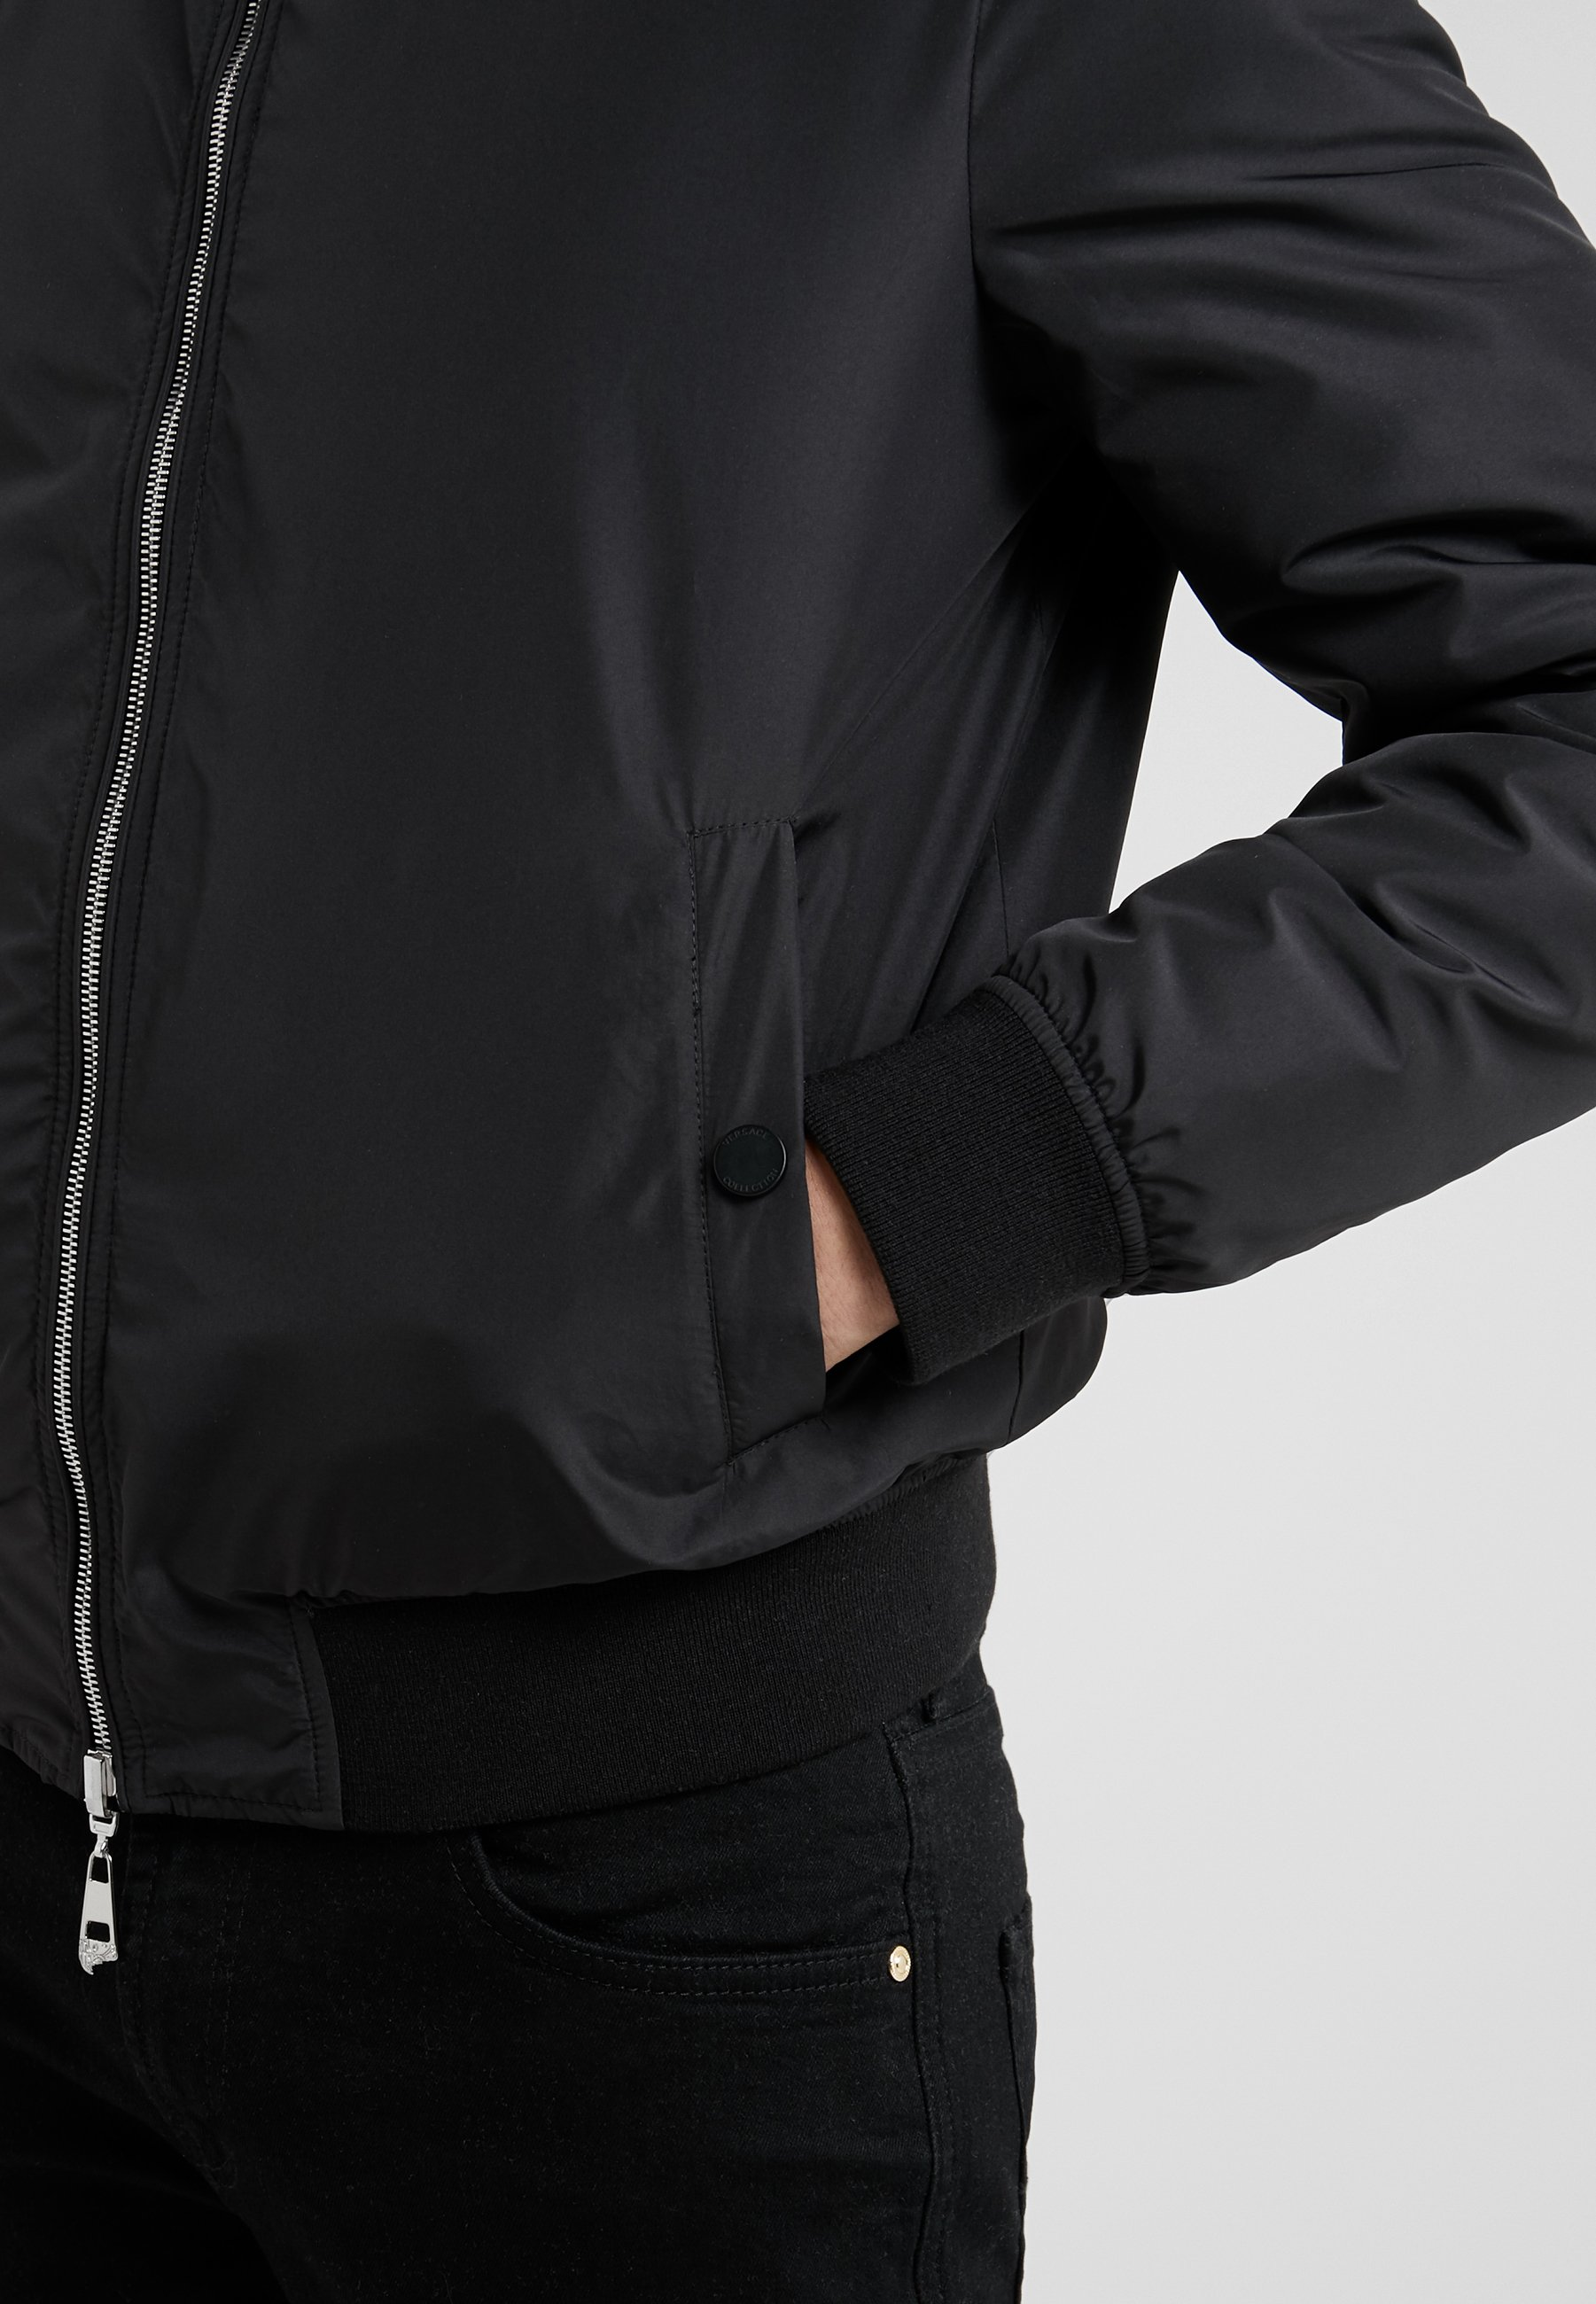 BlousonBomber Collection Capospalla BlousonBomber Nero Versace Collection Nero Capospalla Capospalla Versace Collection Versace BlousonBomber rxoedQCBW